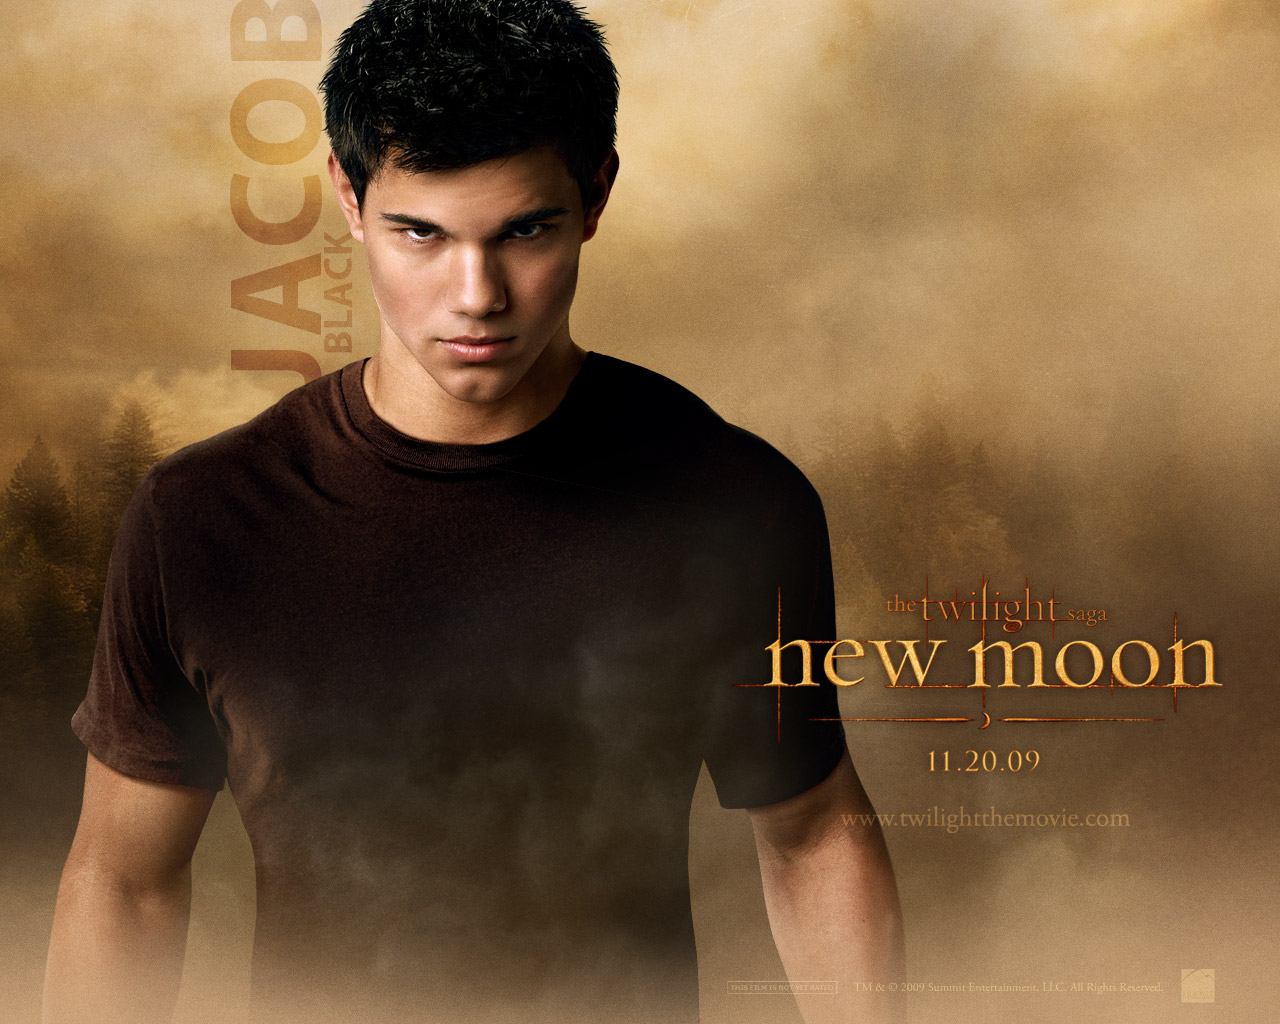 http://3.bp.blogspot.com/-wHHHl7mkyoU/TzivS8CuF6I/AAAAAAAABXA/uOO_jr2CdSY/s1600/Taylor_Lautner_in_The_Twilight_Saga+_New_Moon_hd-desktop-wallpaper-screensaver-background-hot.jpg